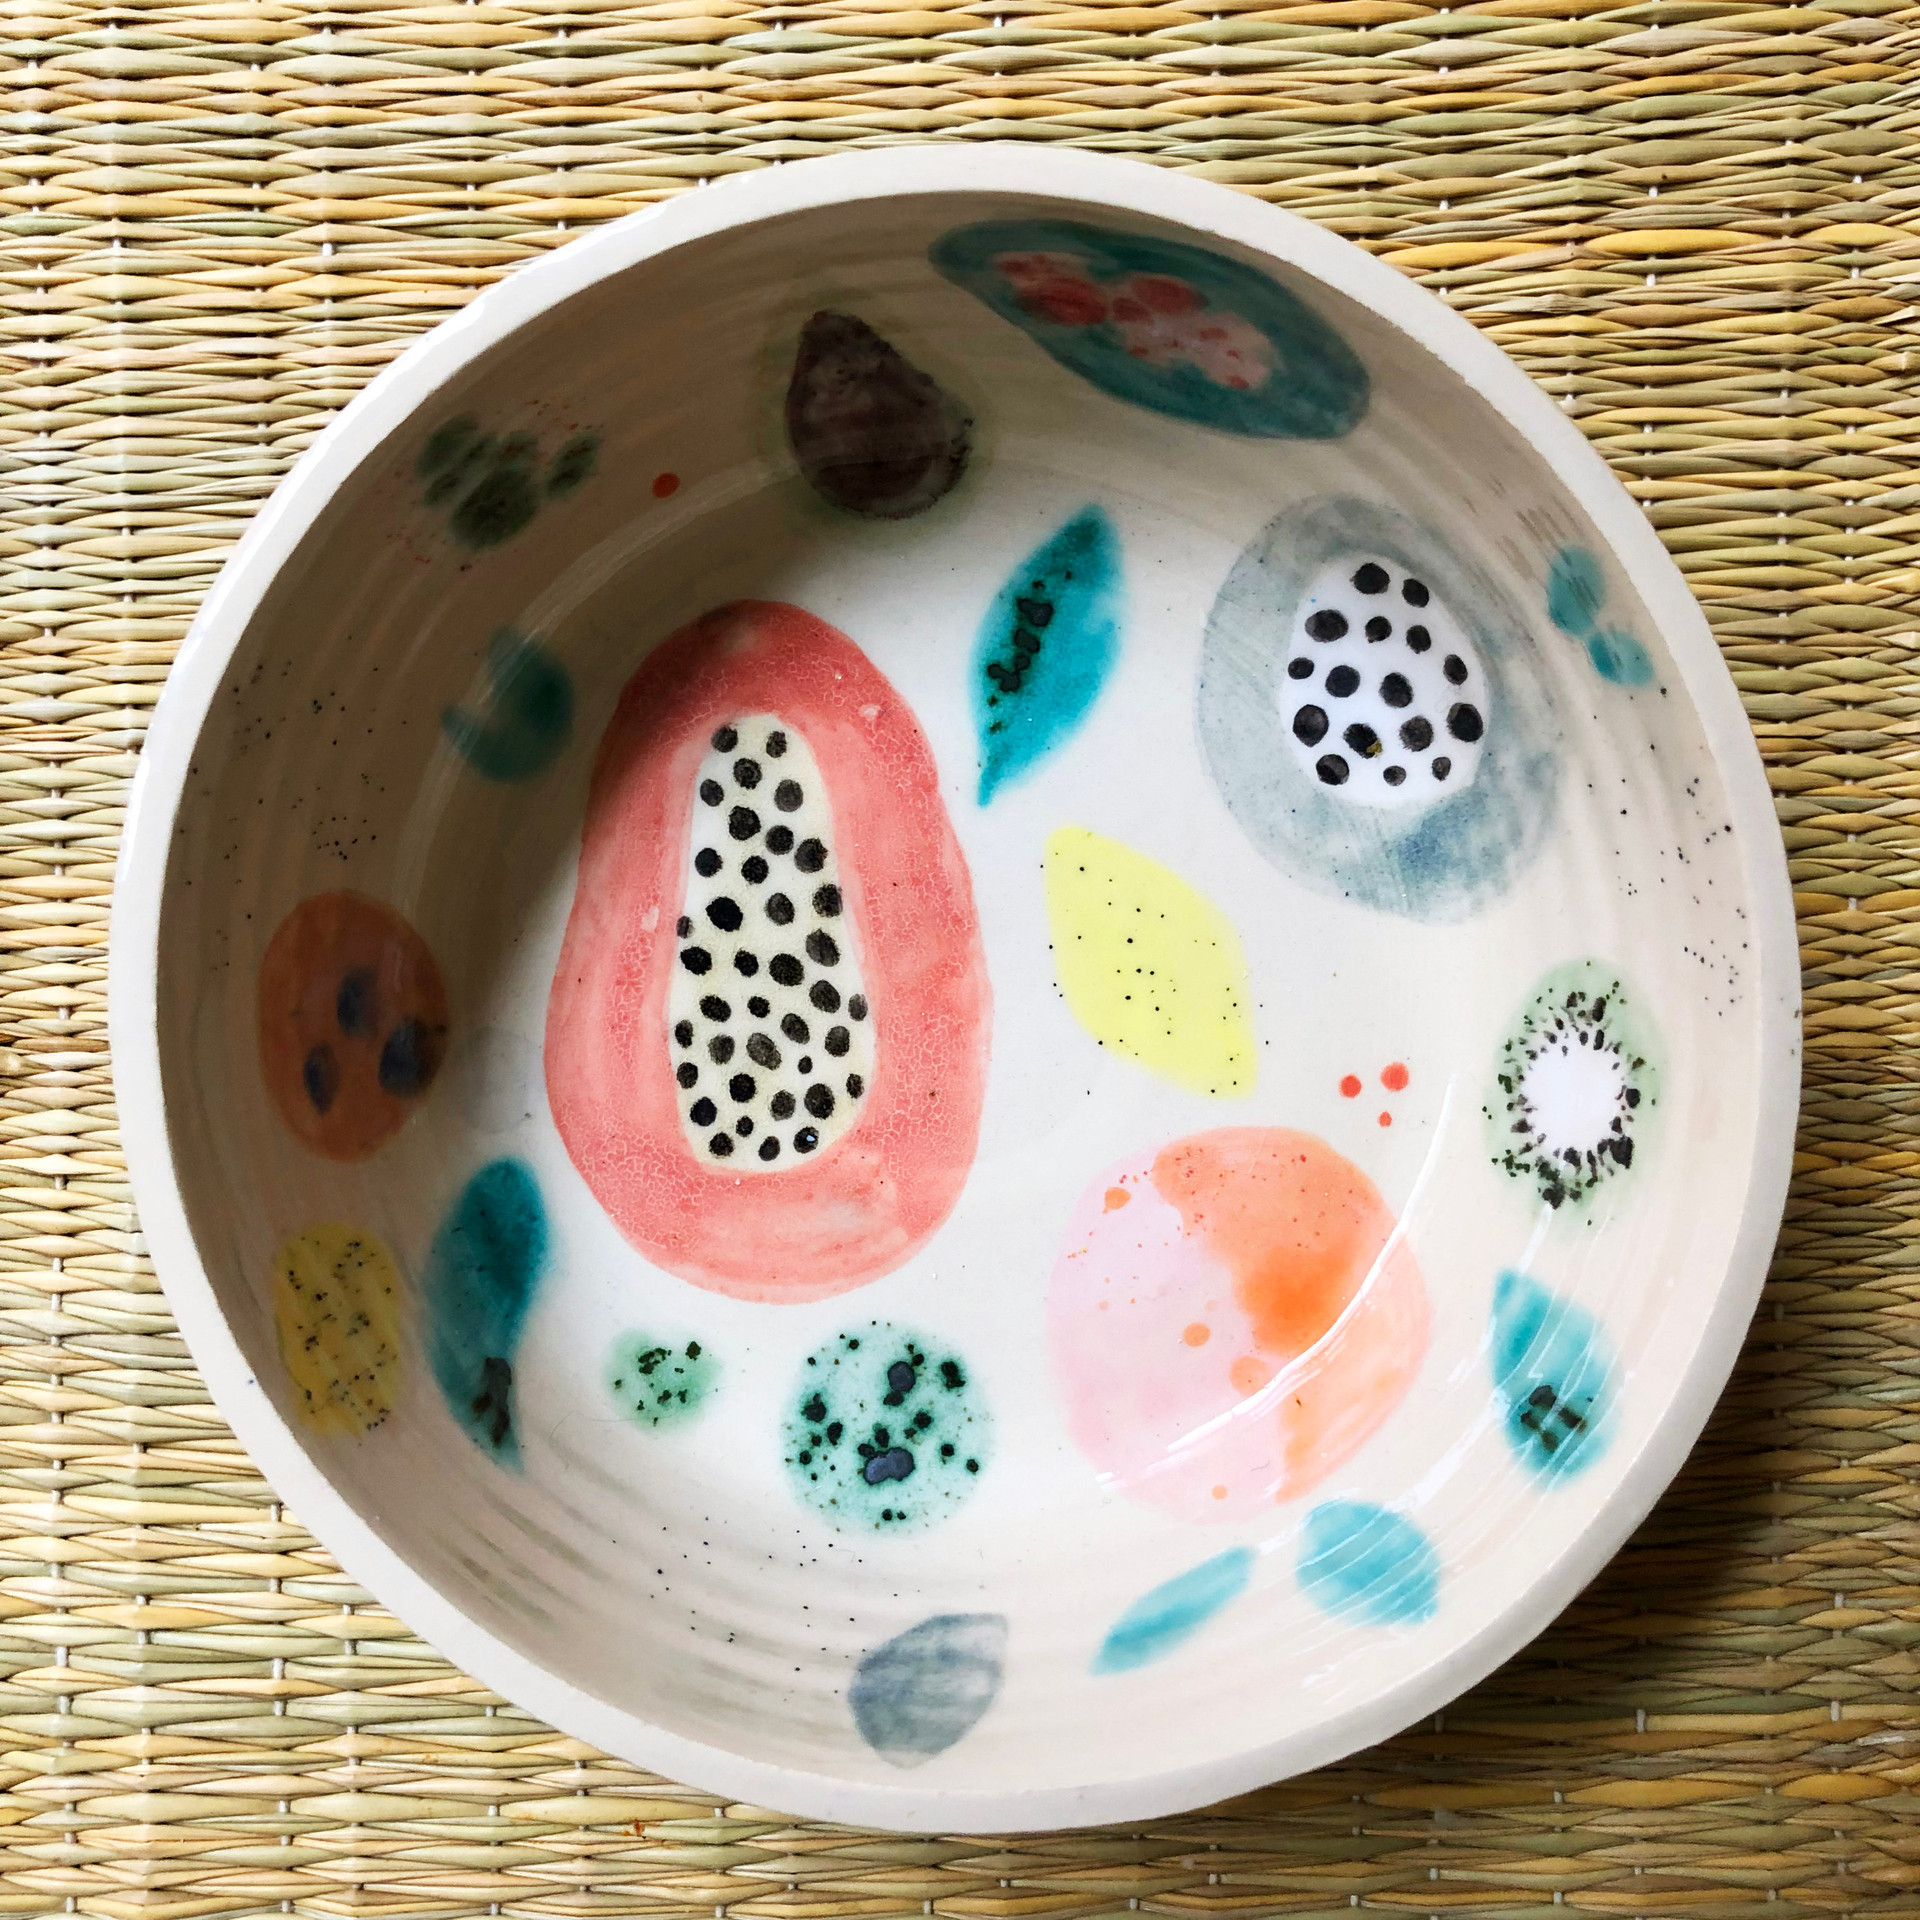 Joelle Wehkamp Painted ceramics 4.jpg